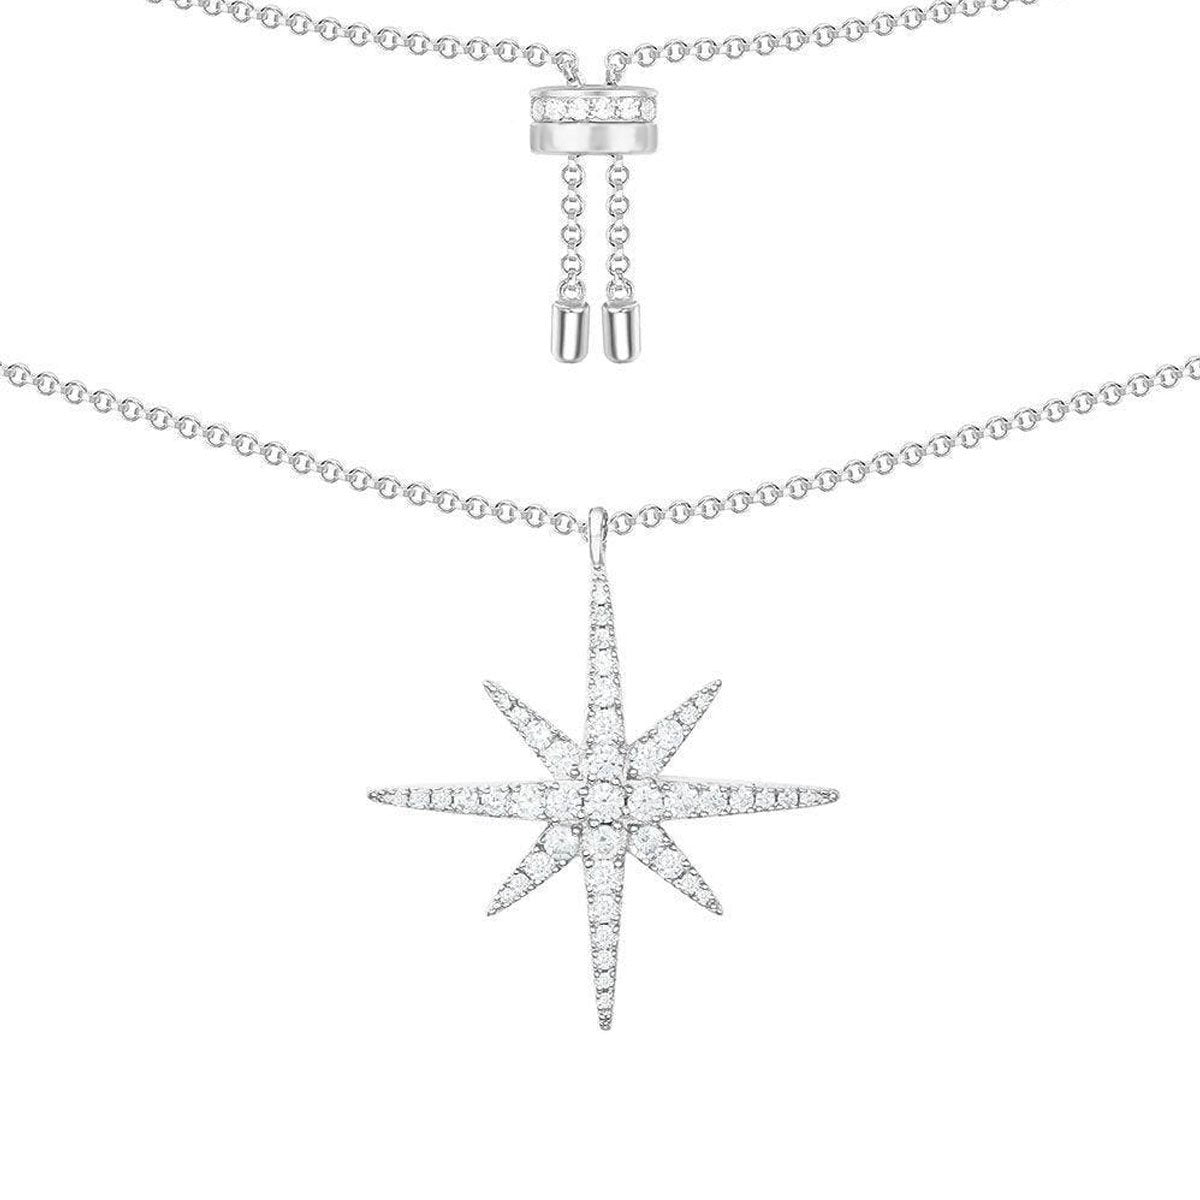 Necklace N1269-S - 925 Sterling Silver